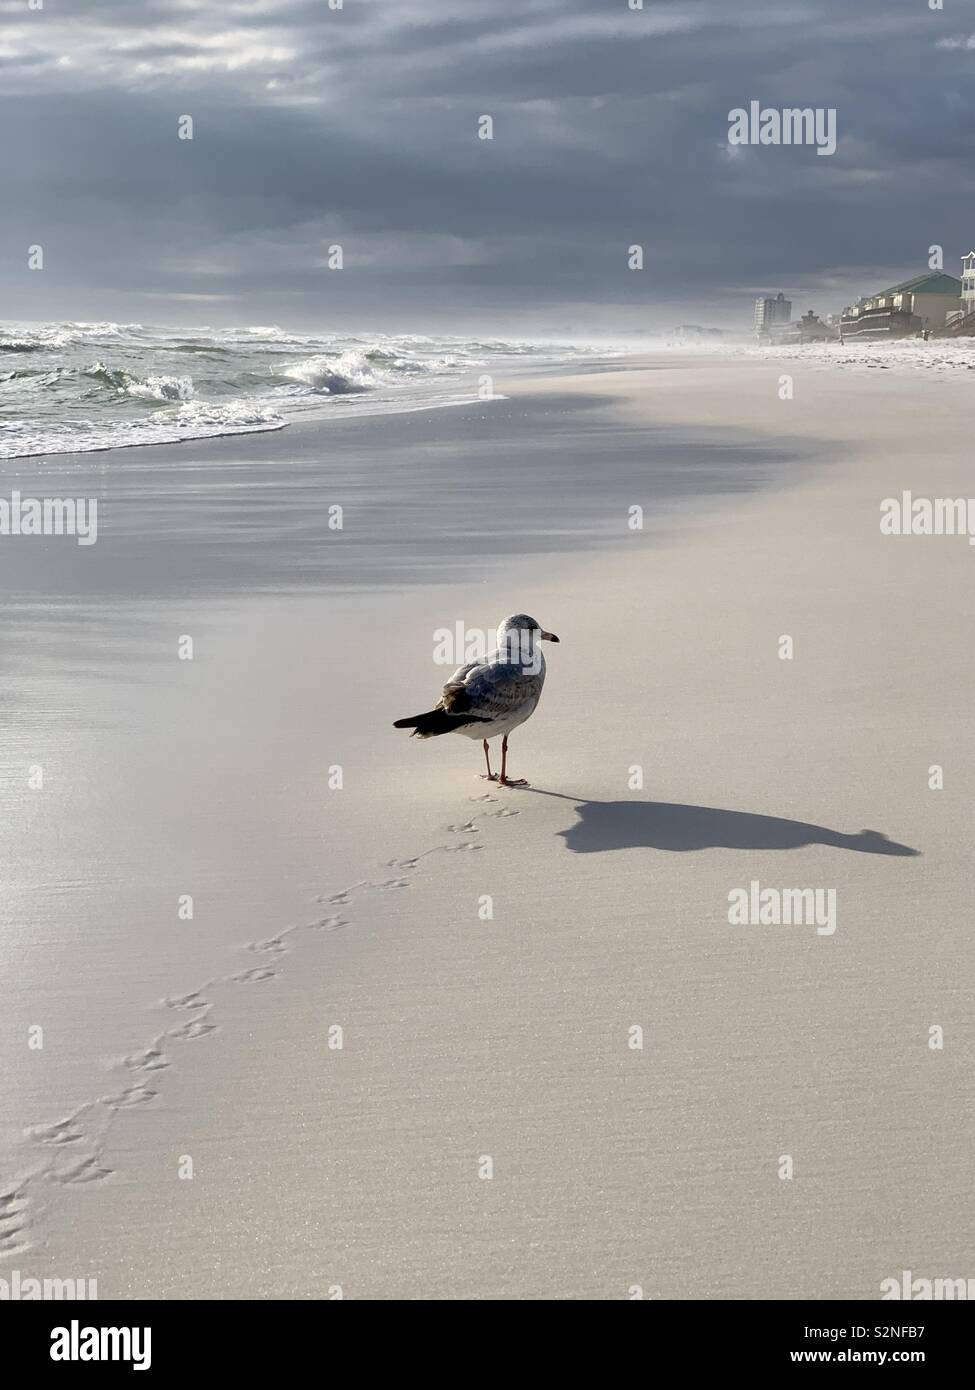 Gull walking on beach on a stormy day with shadow, waves, clouds Stock Photo